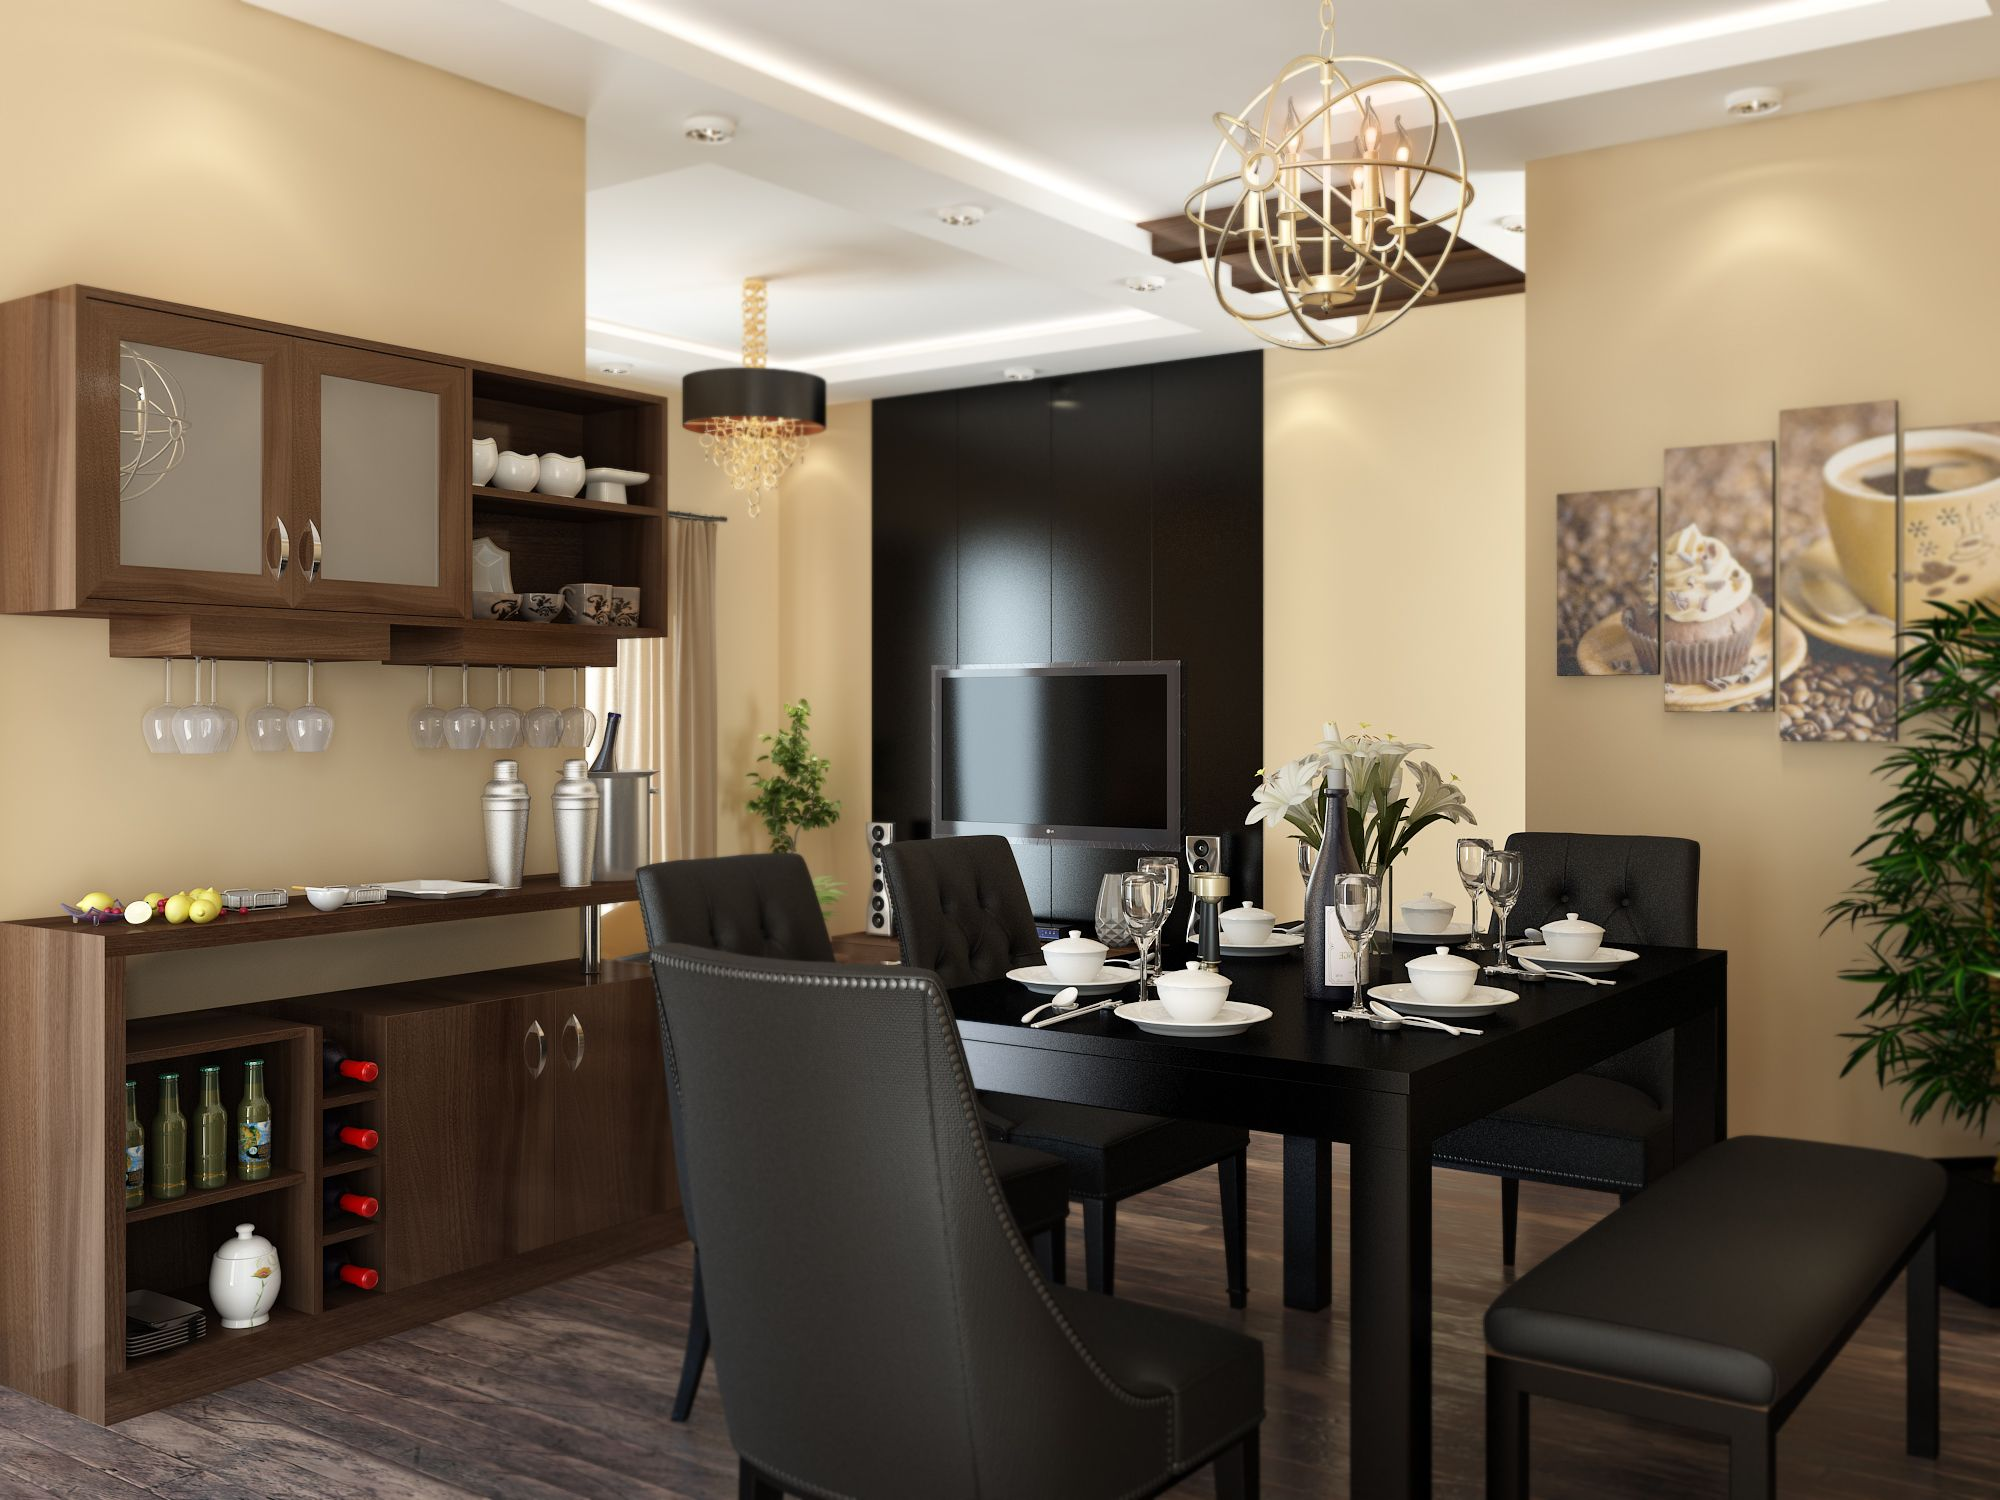 girgit is one of the best interior designer in bangalore has